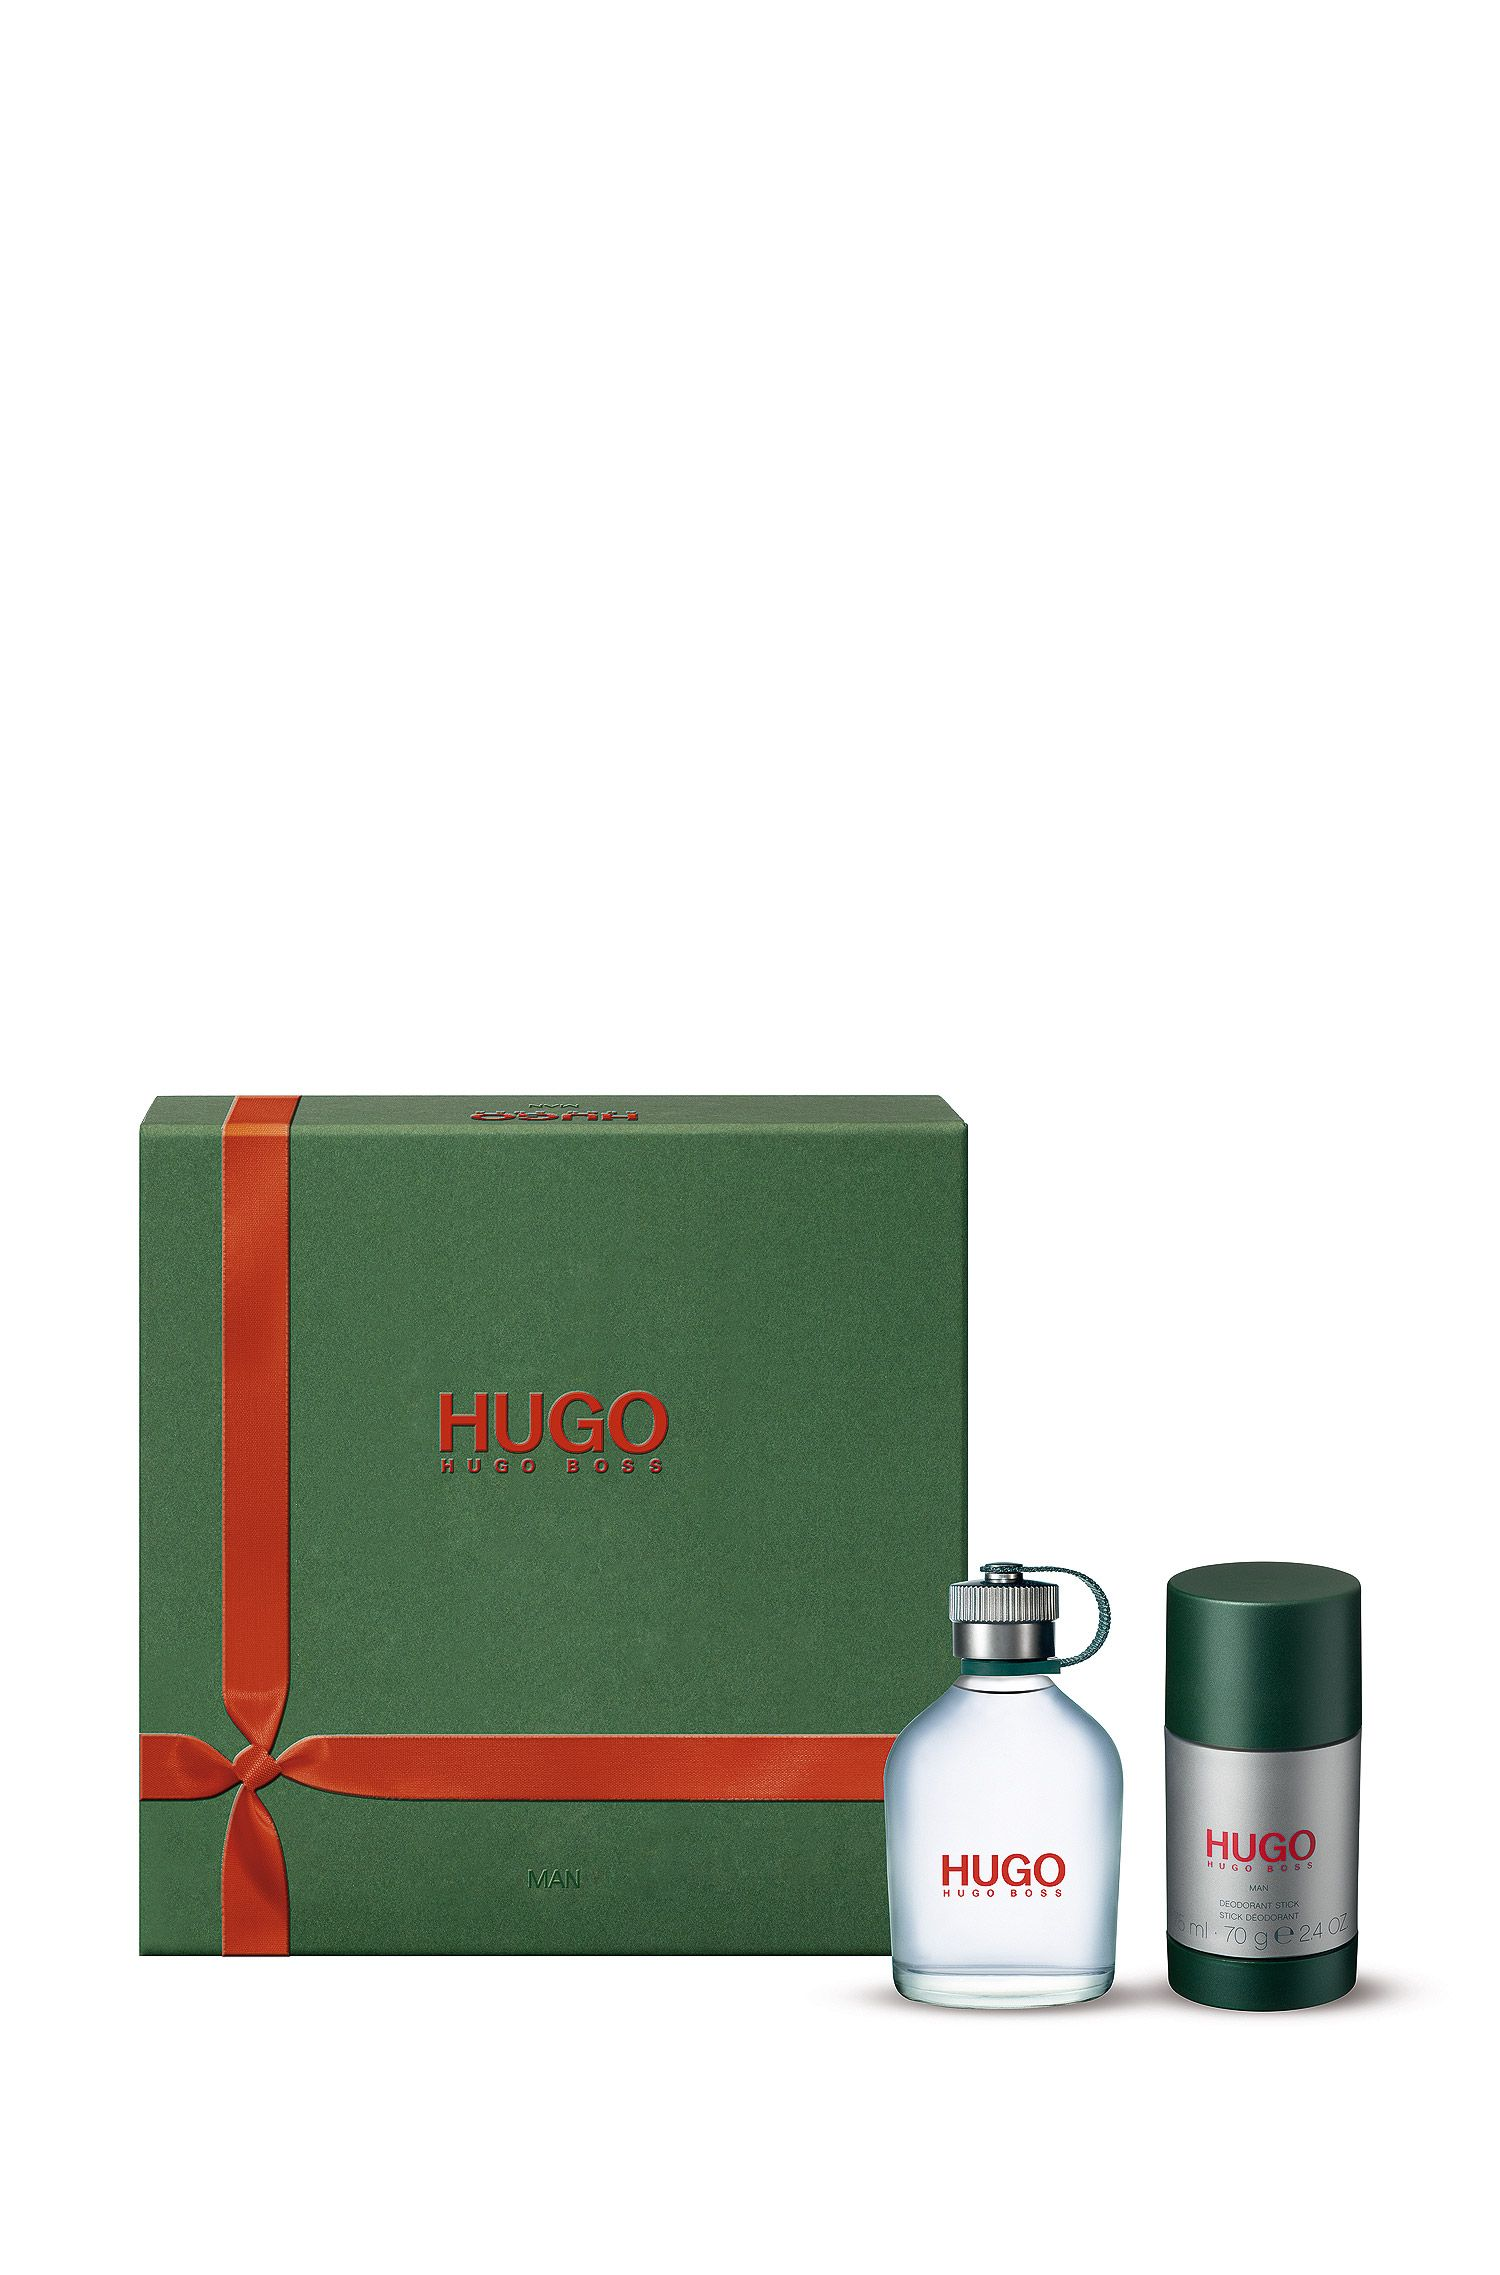 HUGO Men cadeauset